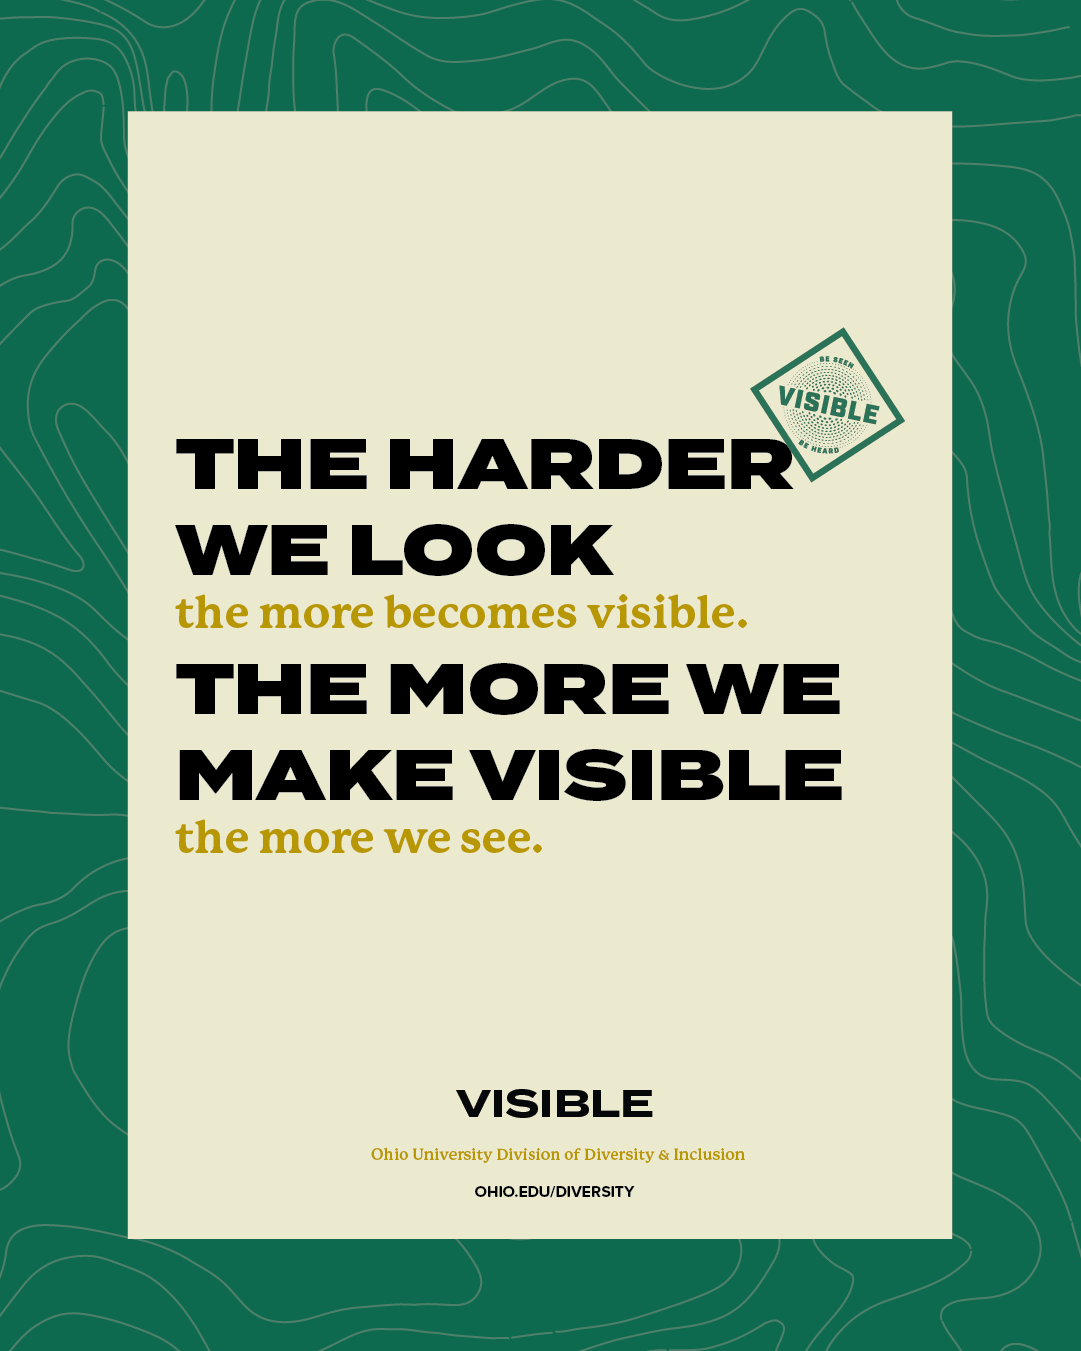 The harder we look the more becomes visible. The more we make visible the more we see.